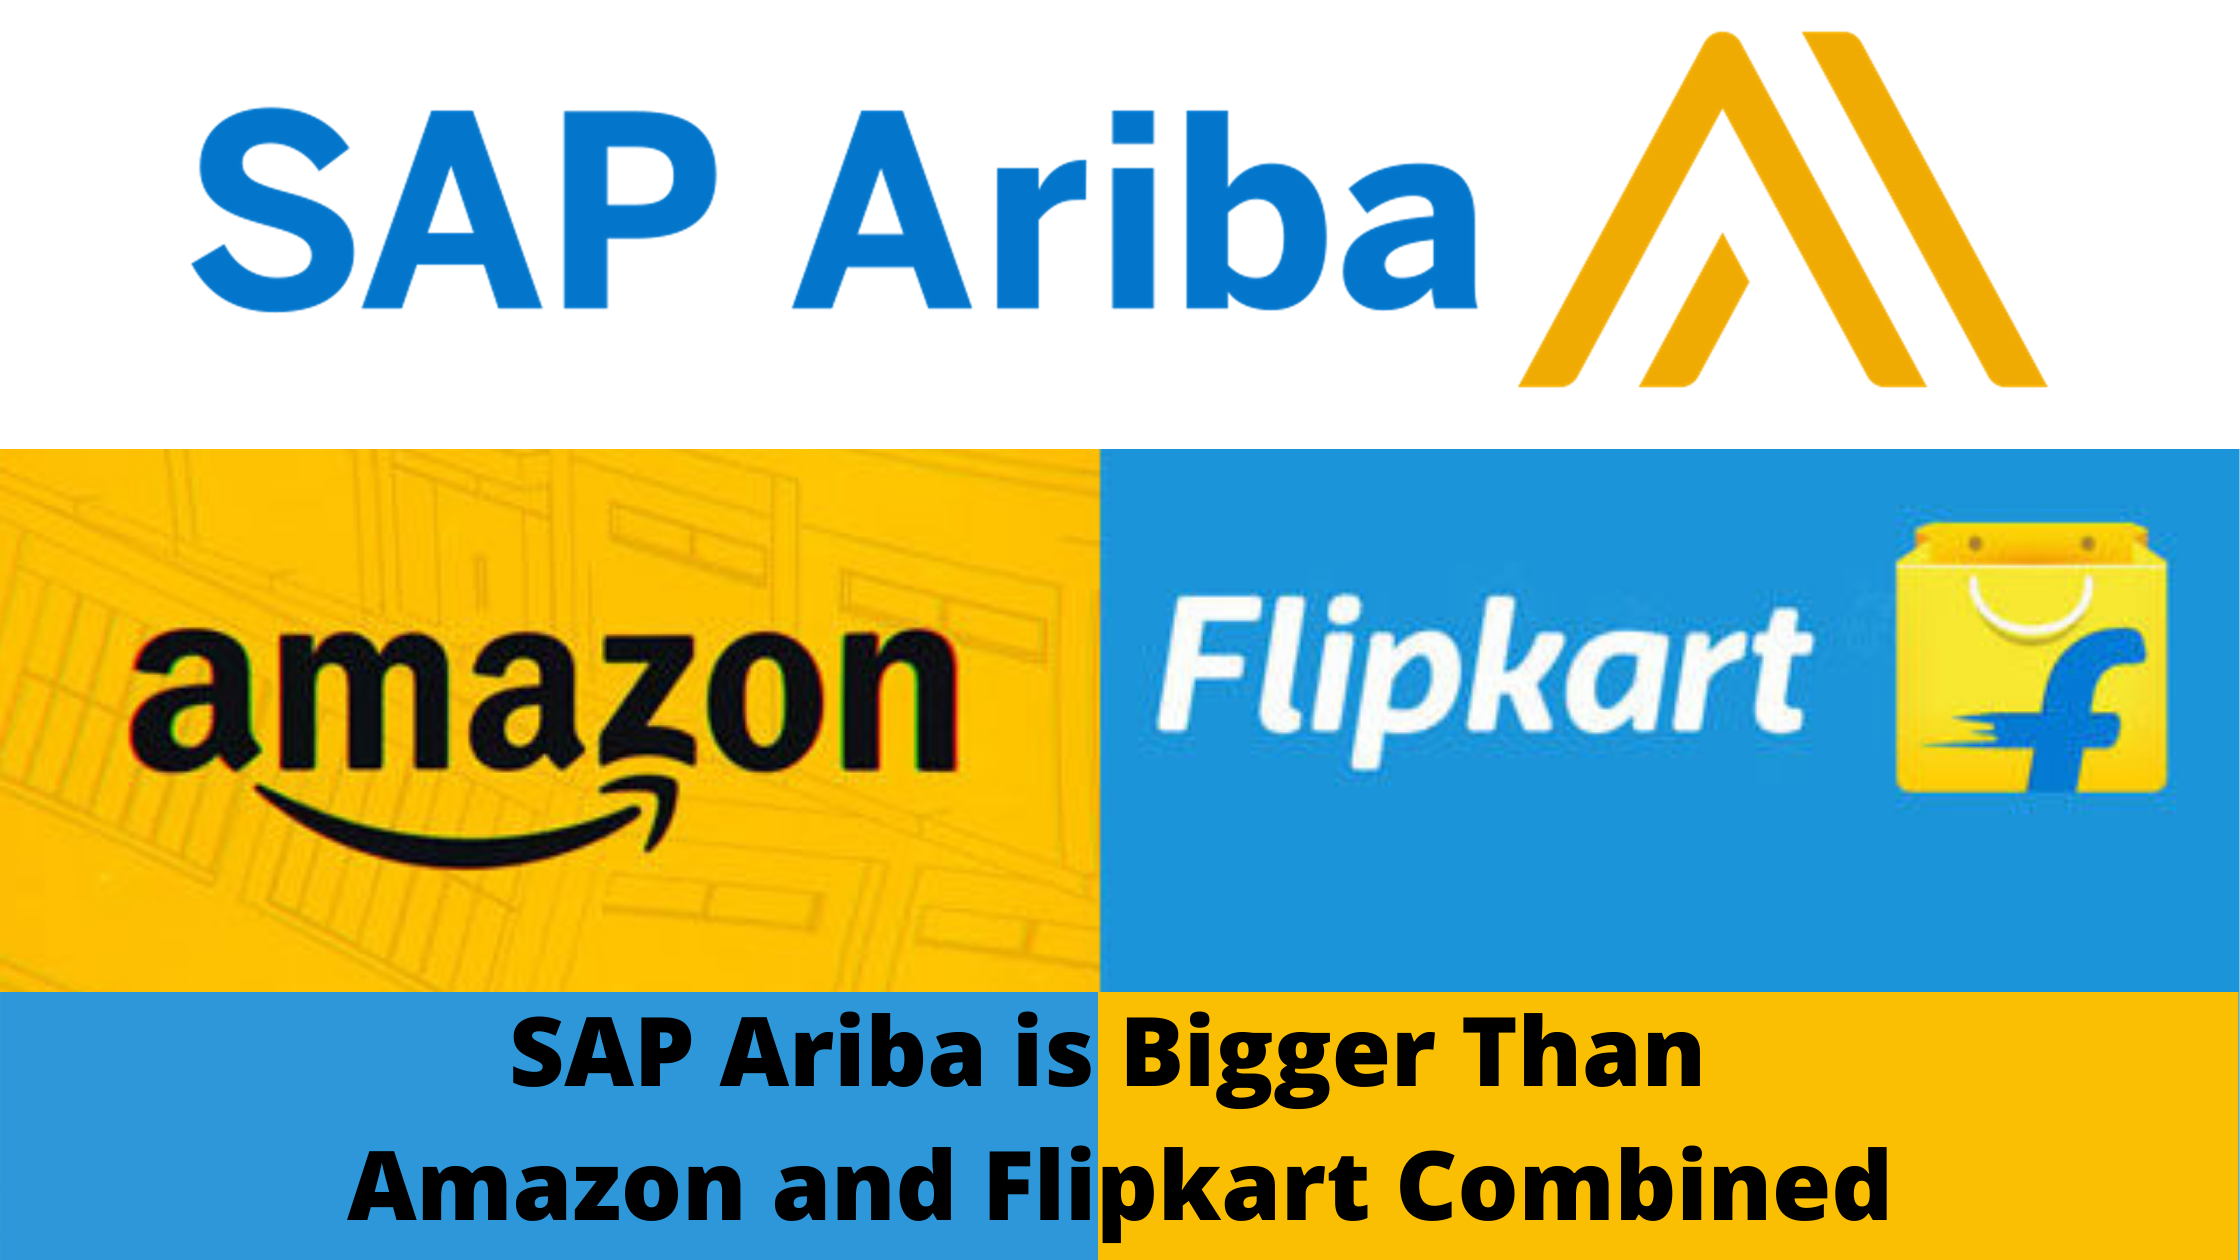 SAP Ariba is Bigger than Amazon and Flipkart Combined